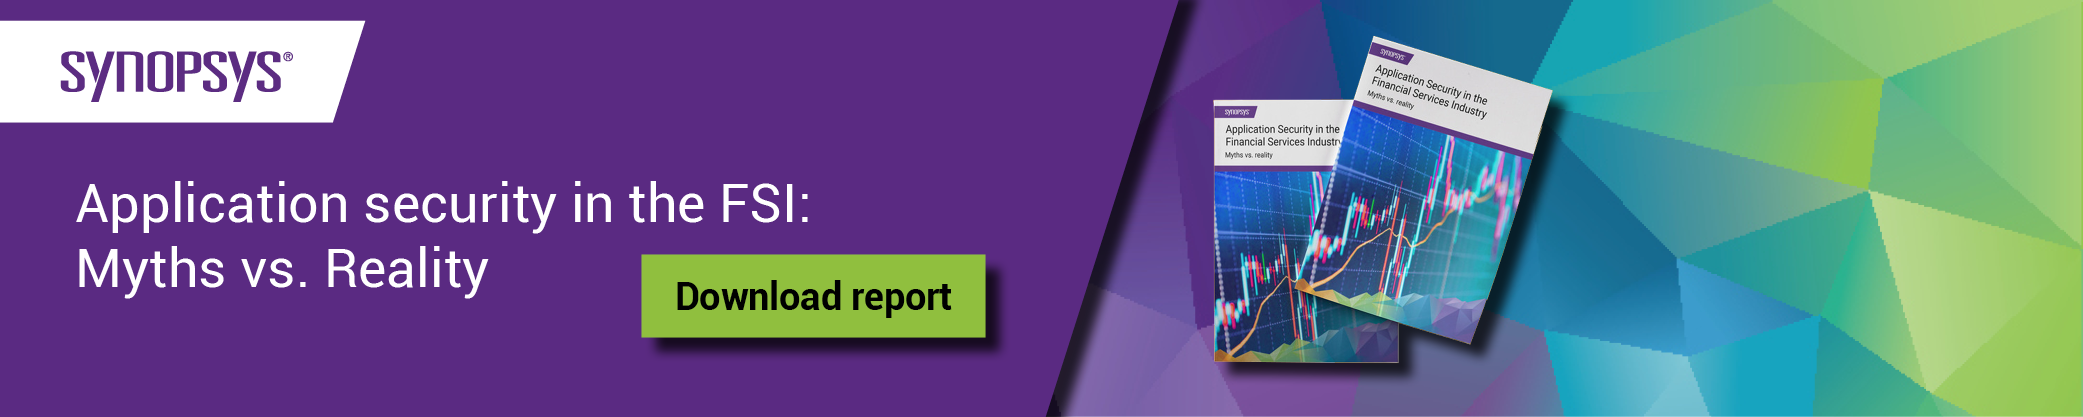 Report: Application Security in the FSI Myths vs. Reality | Synopsys